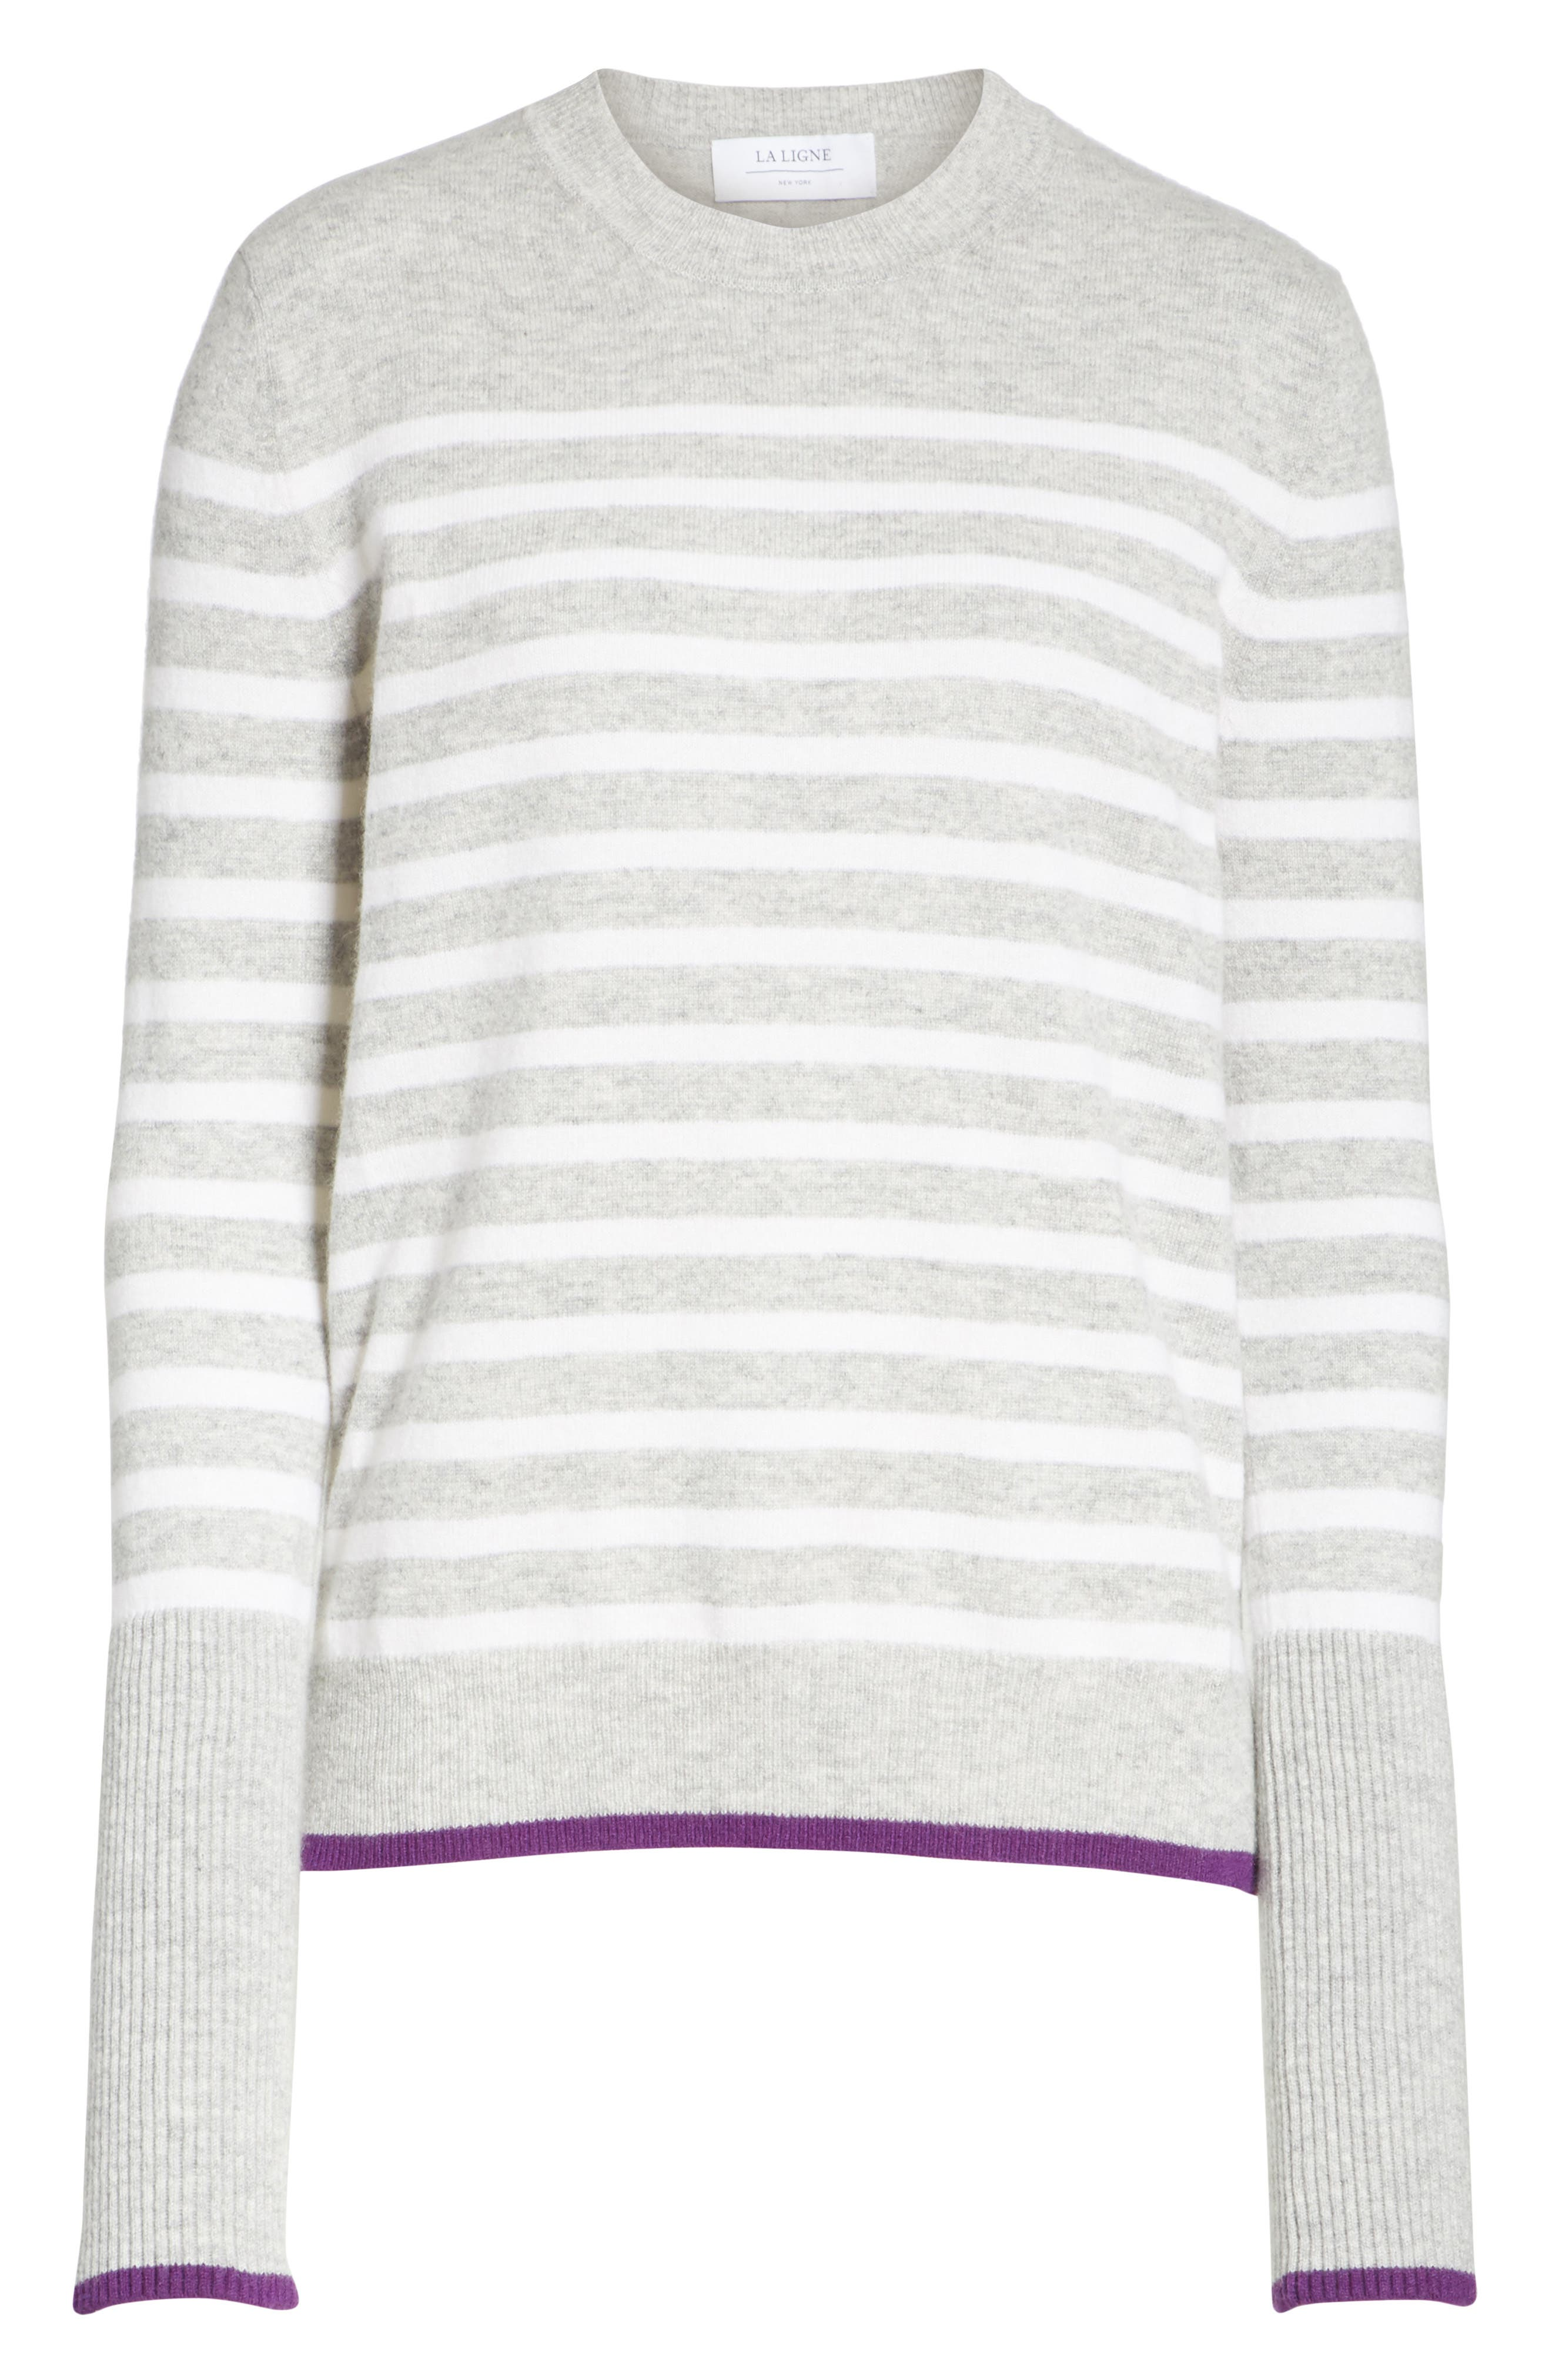 AAA Lean Lines Cashmere Sweater,                             Alternate thumbnail 6, color,                             GREY MARLE/ CREAM/ PURPLE